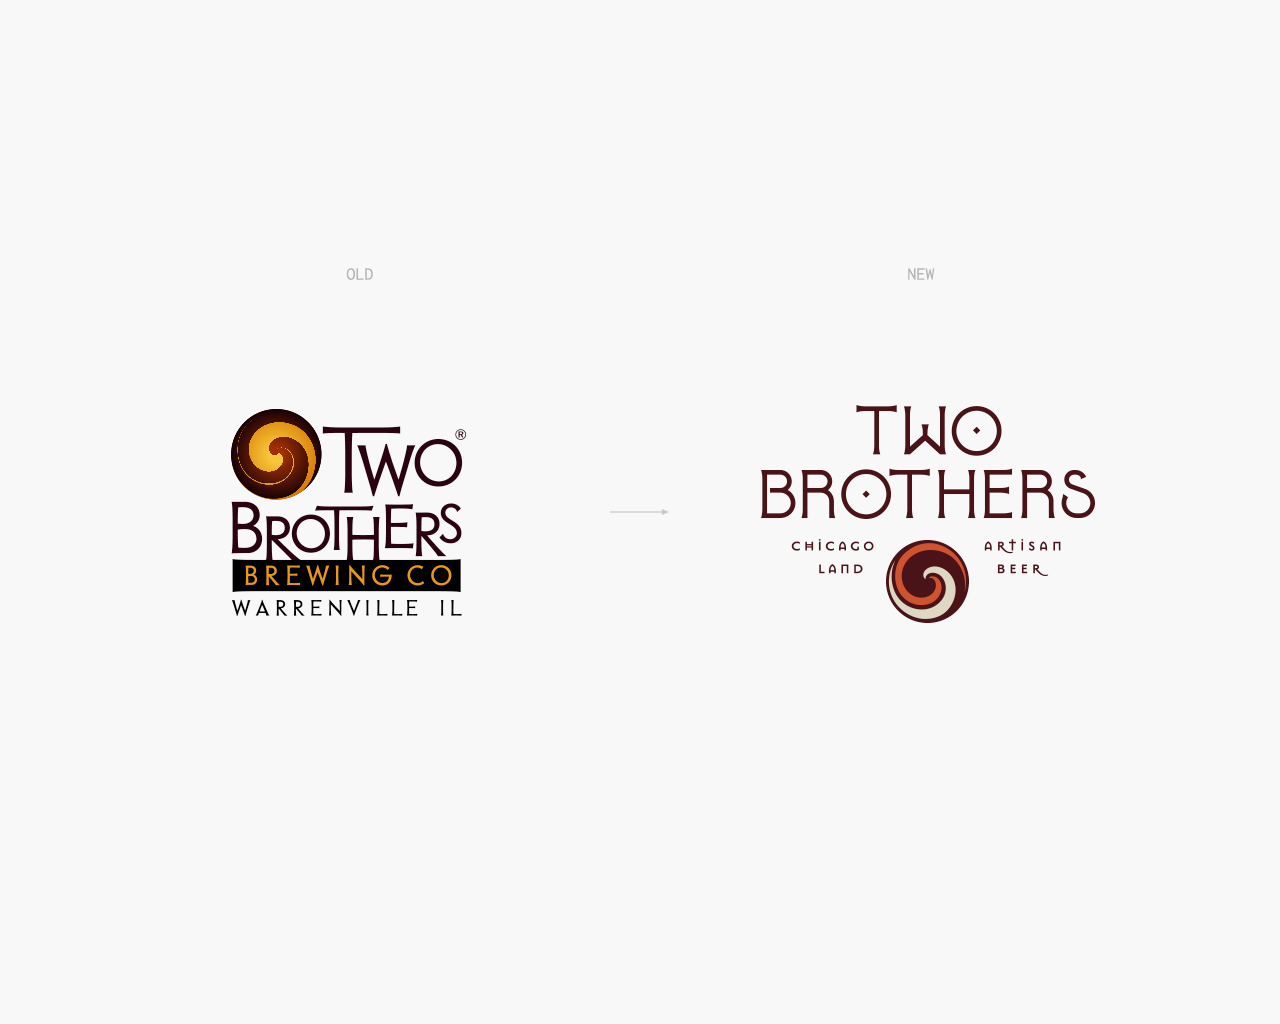 twobrothers_final__0001_01.png